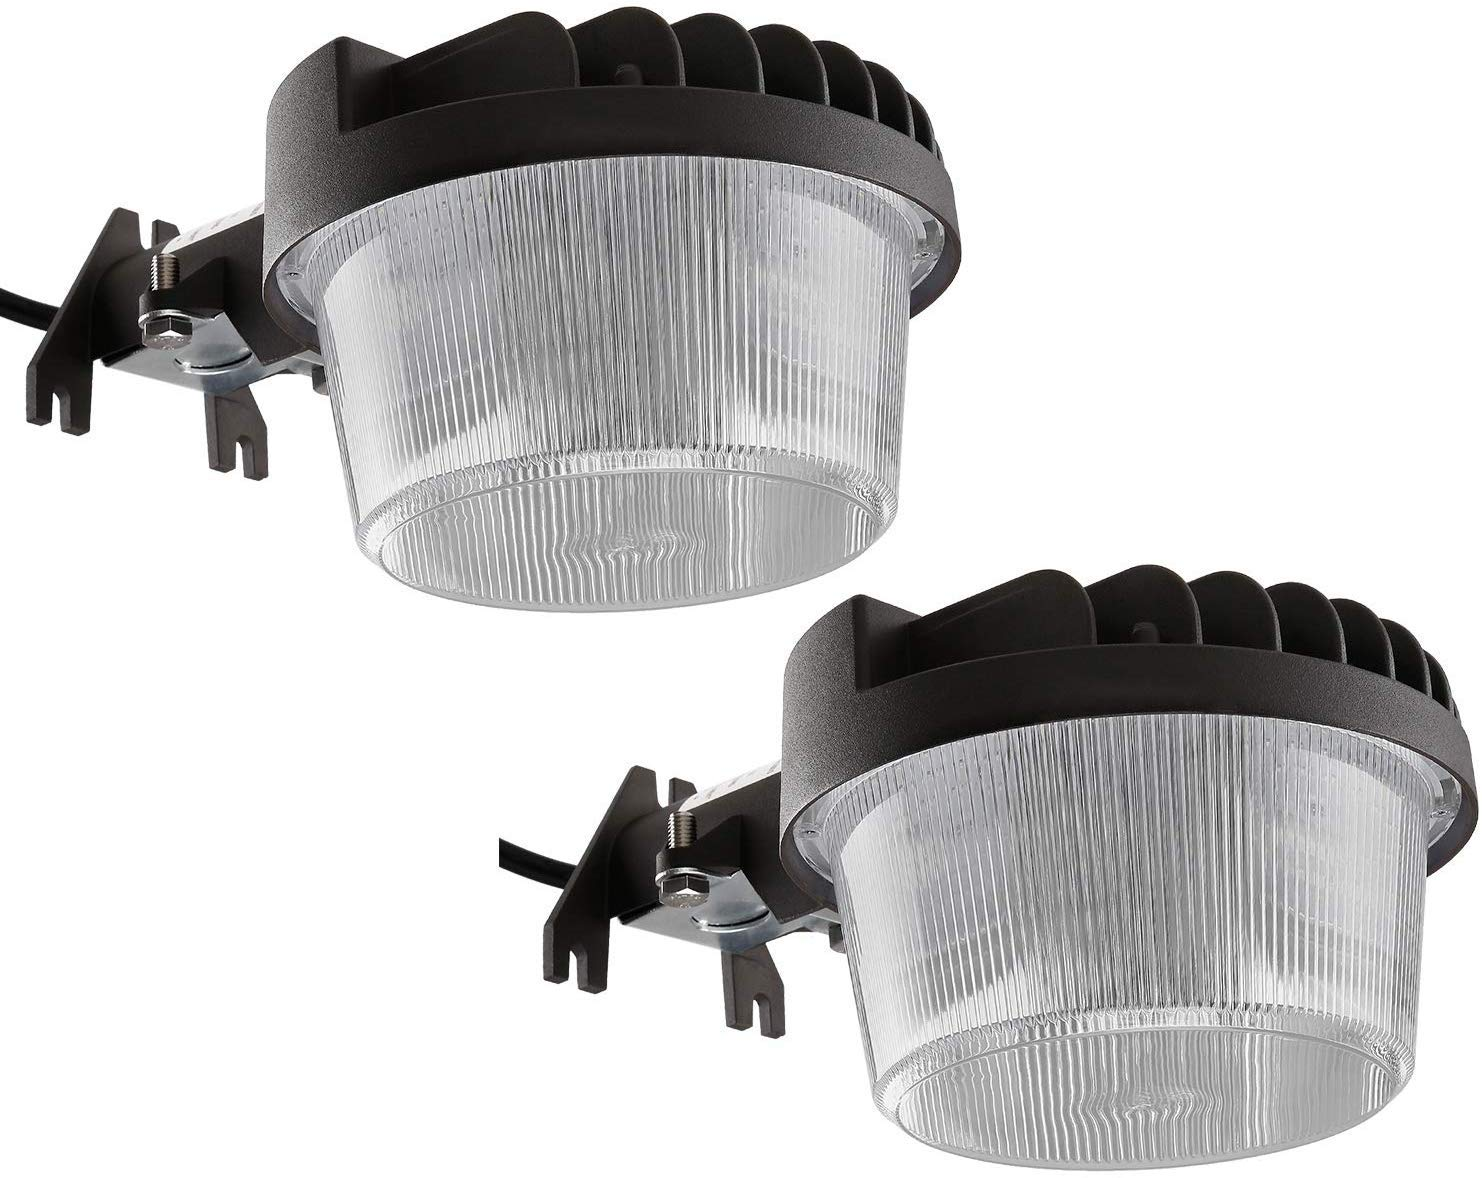 TORCHSTAR 40W LED Outdoor Barn Light Dusk-to-Dawn Security Area Lights with Photocell, Wet Location Yard Floodlight Fixture, 3000K Warm White, 100-277V, ETL-Listed, 5-Year Warranty, Pack of 2